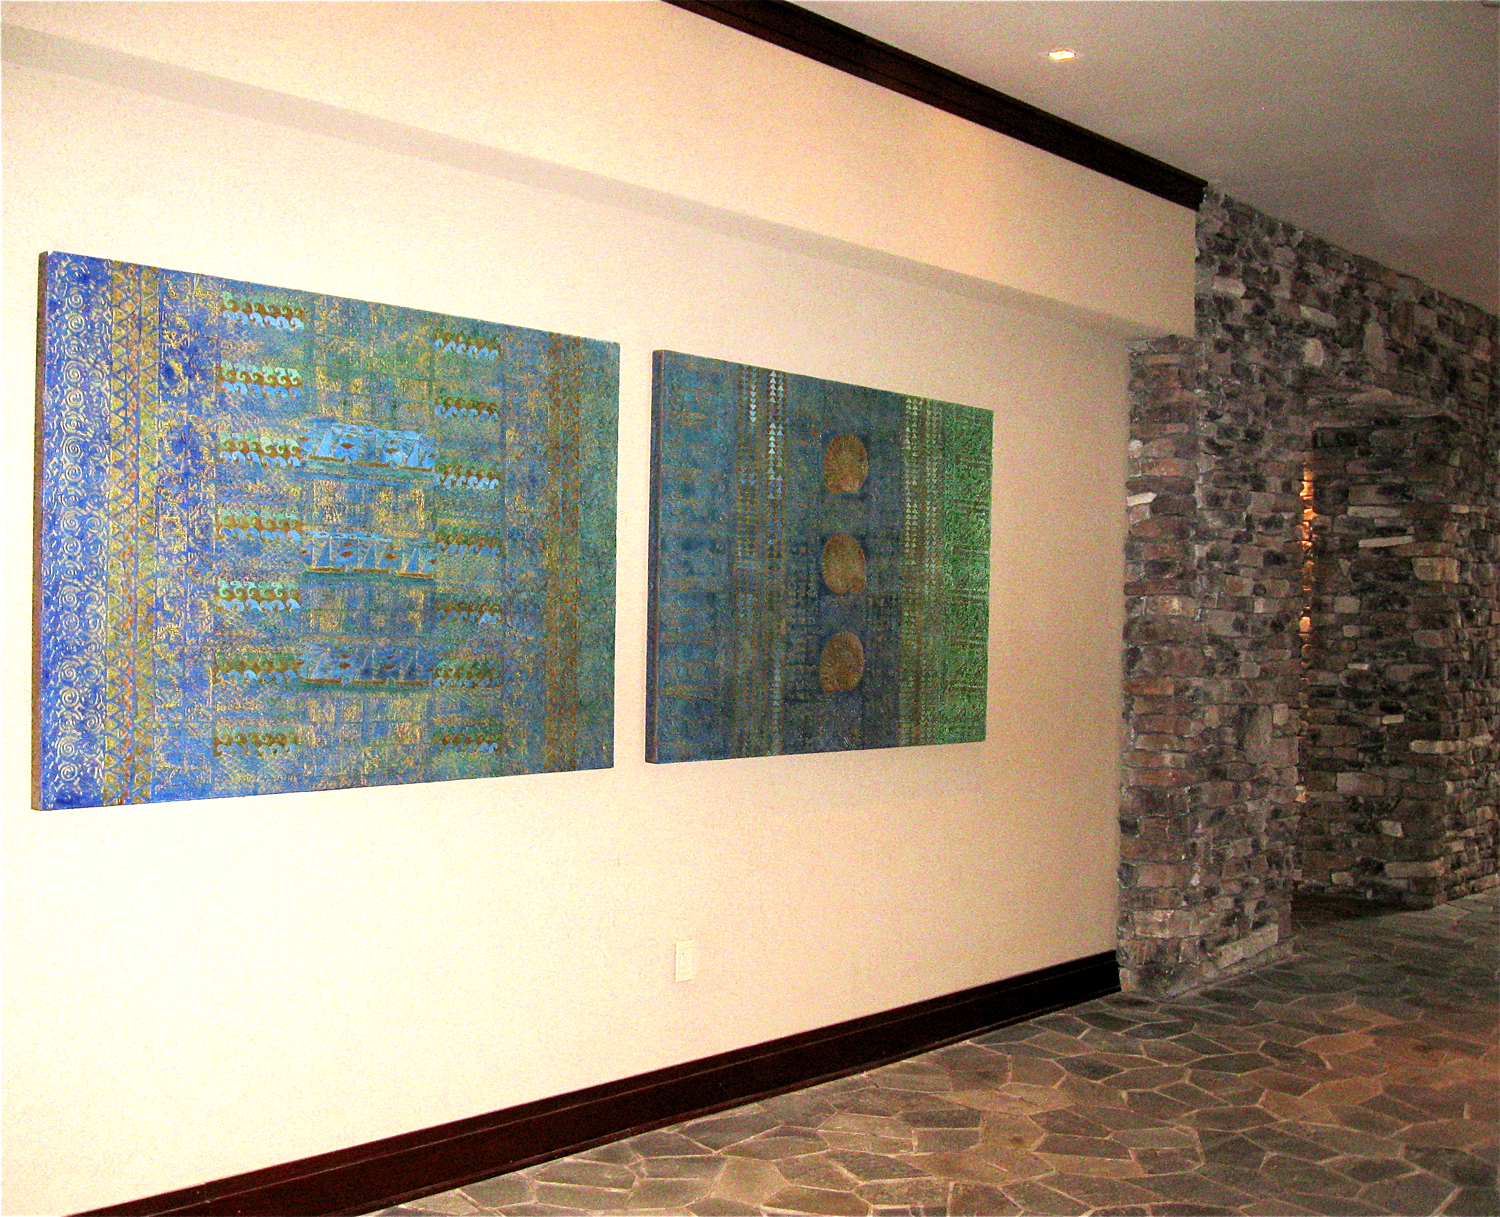 "The Montage Hotel & Resorts - Kapalua Bay Maui - Cane & Canoe Restaurant, North & South Breezeways- 2 of 4 paintings that ""tell a story"""